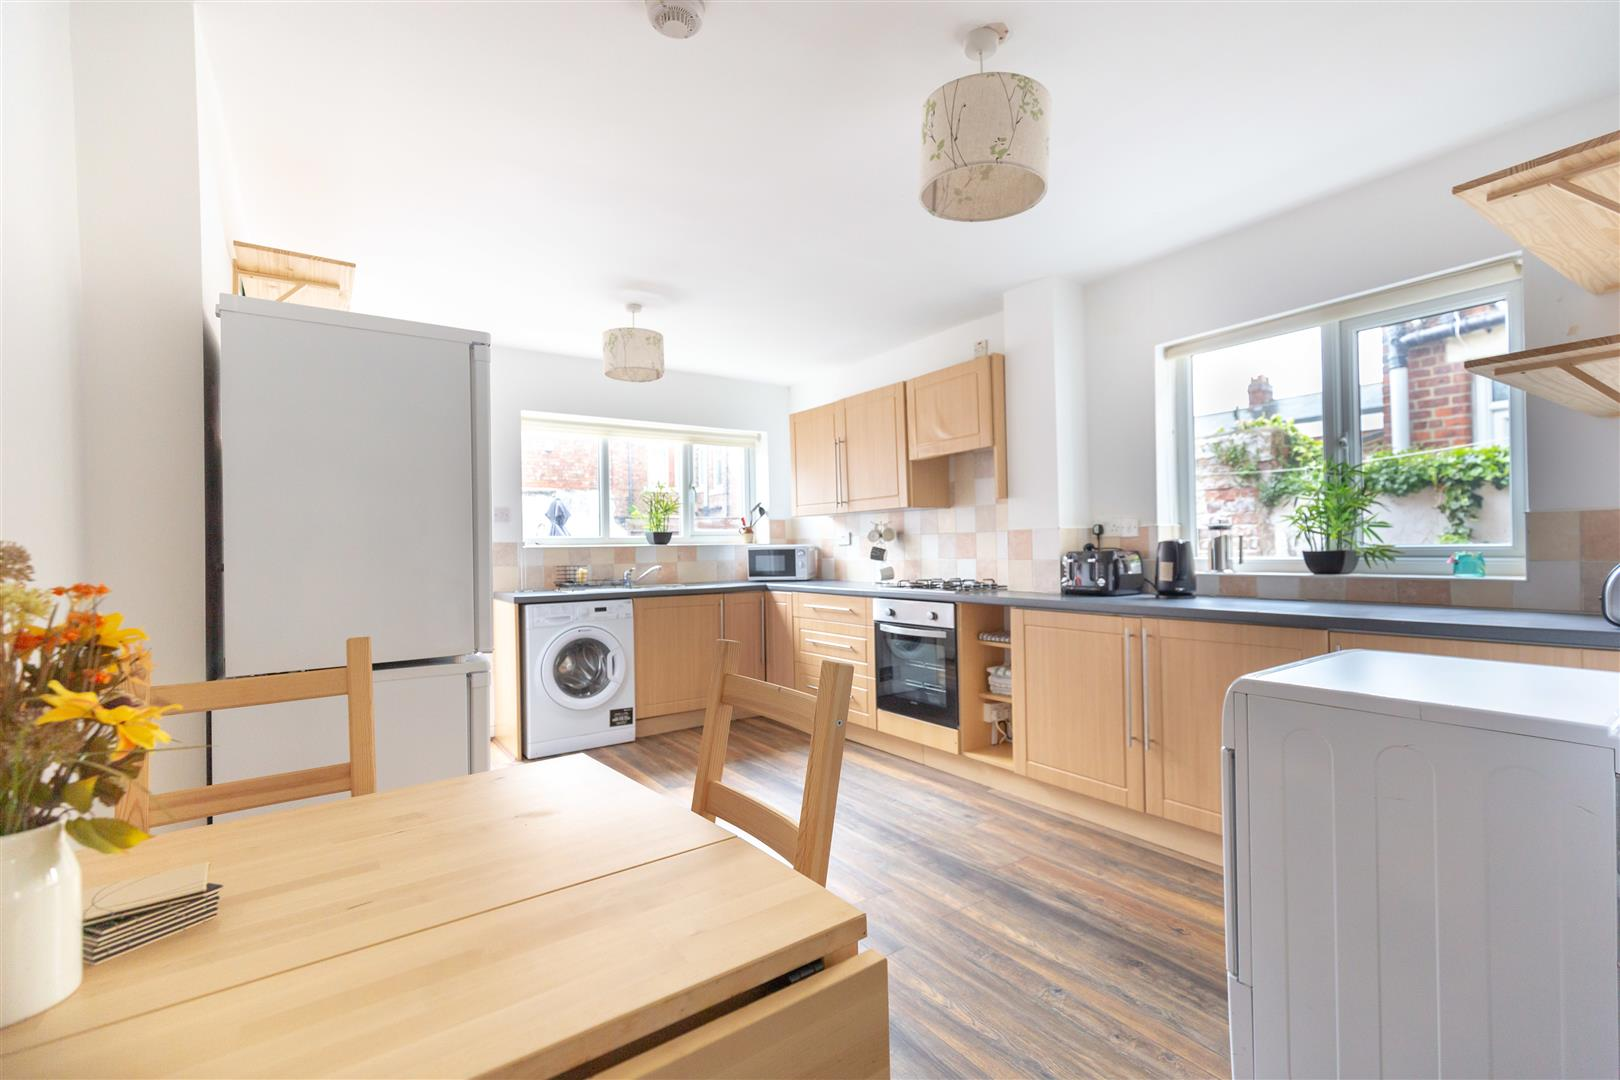 6 bed terraced house to rent in Newcastle Upon Tyne, NE6 5LR 3